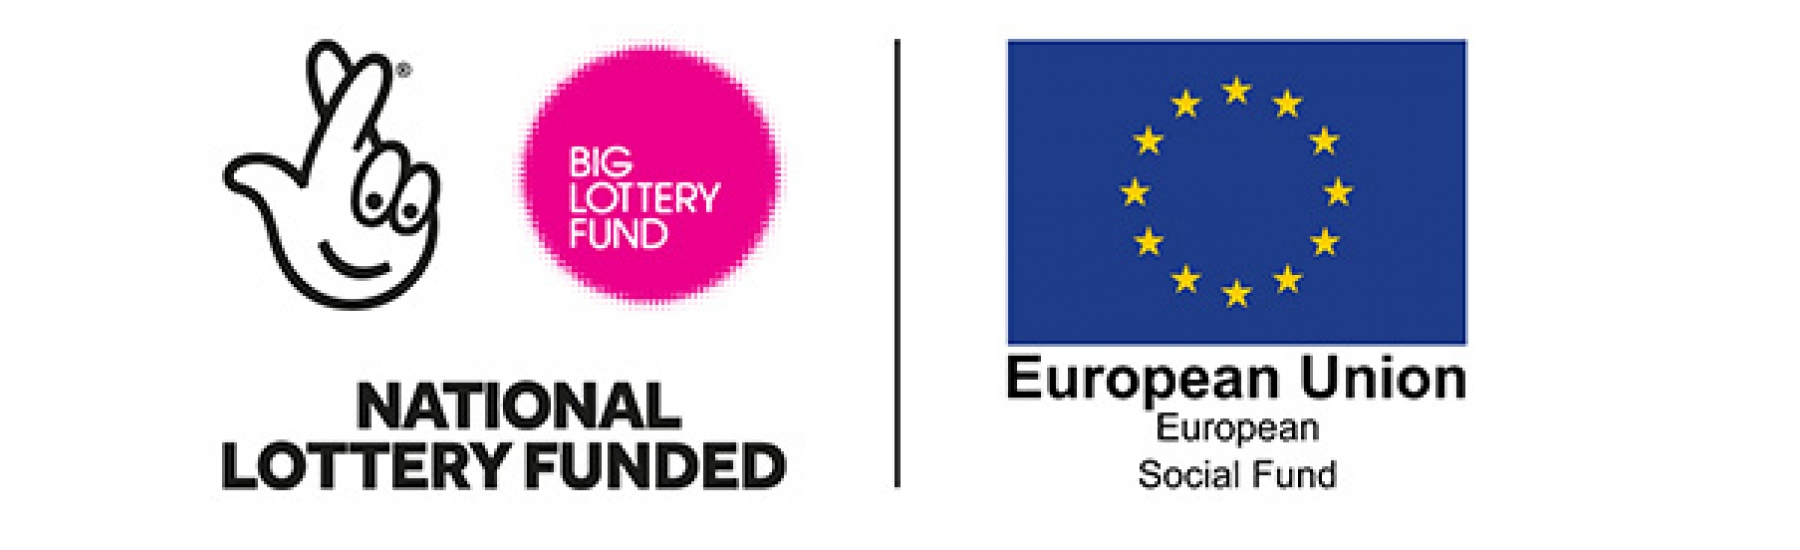 National Lottery Funded & European Social Fund